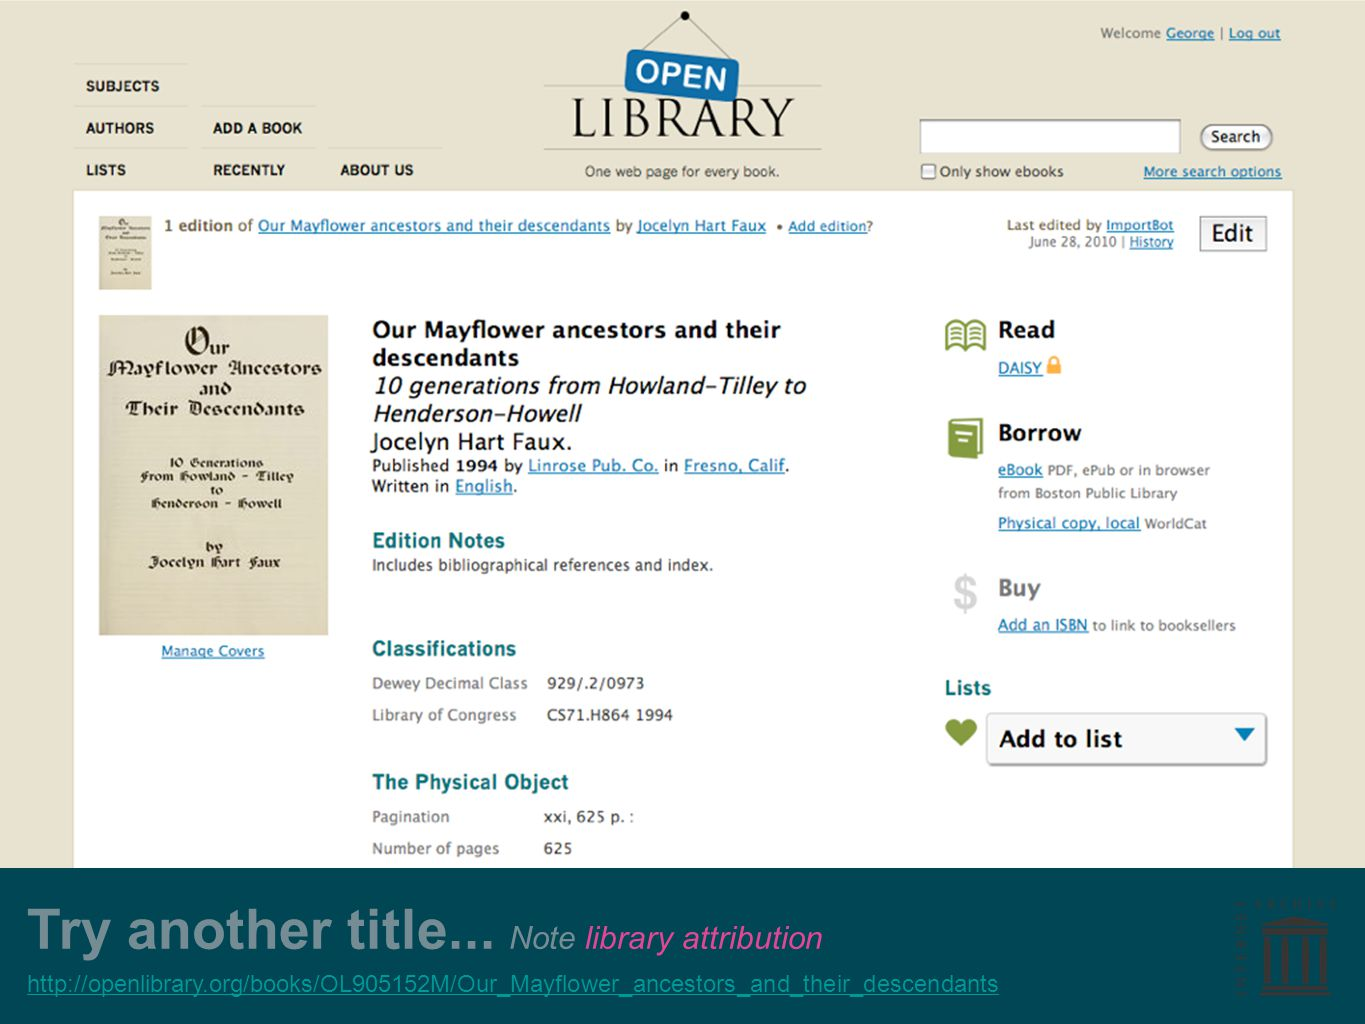 Try another title... Note library attribution http://openlibrary.org/books/OL905152M/Our_Mayflower_ancestors_and_their_descendants